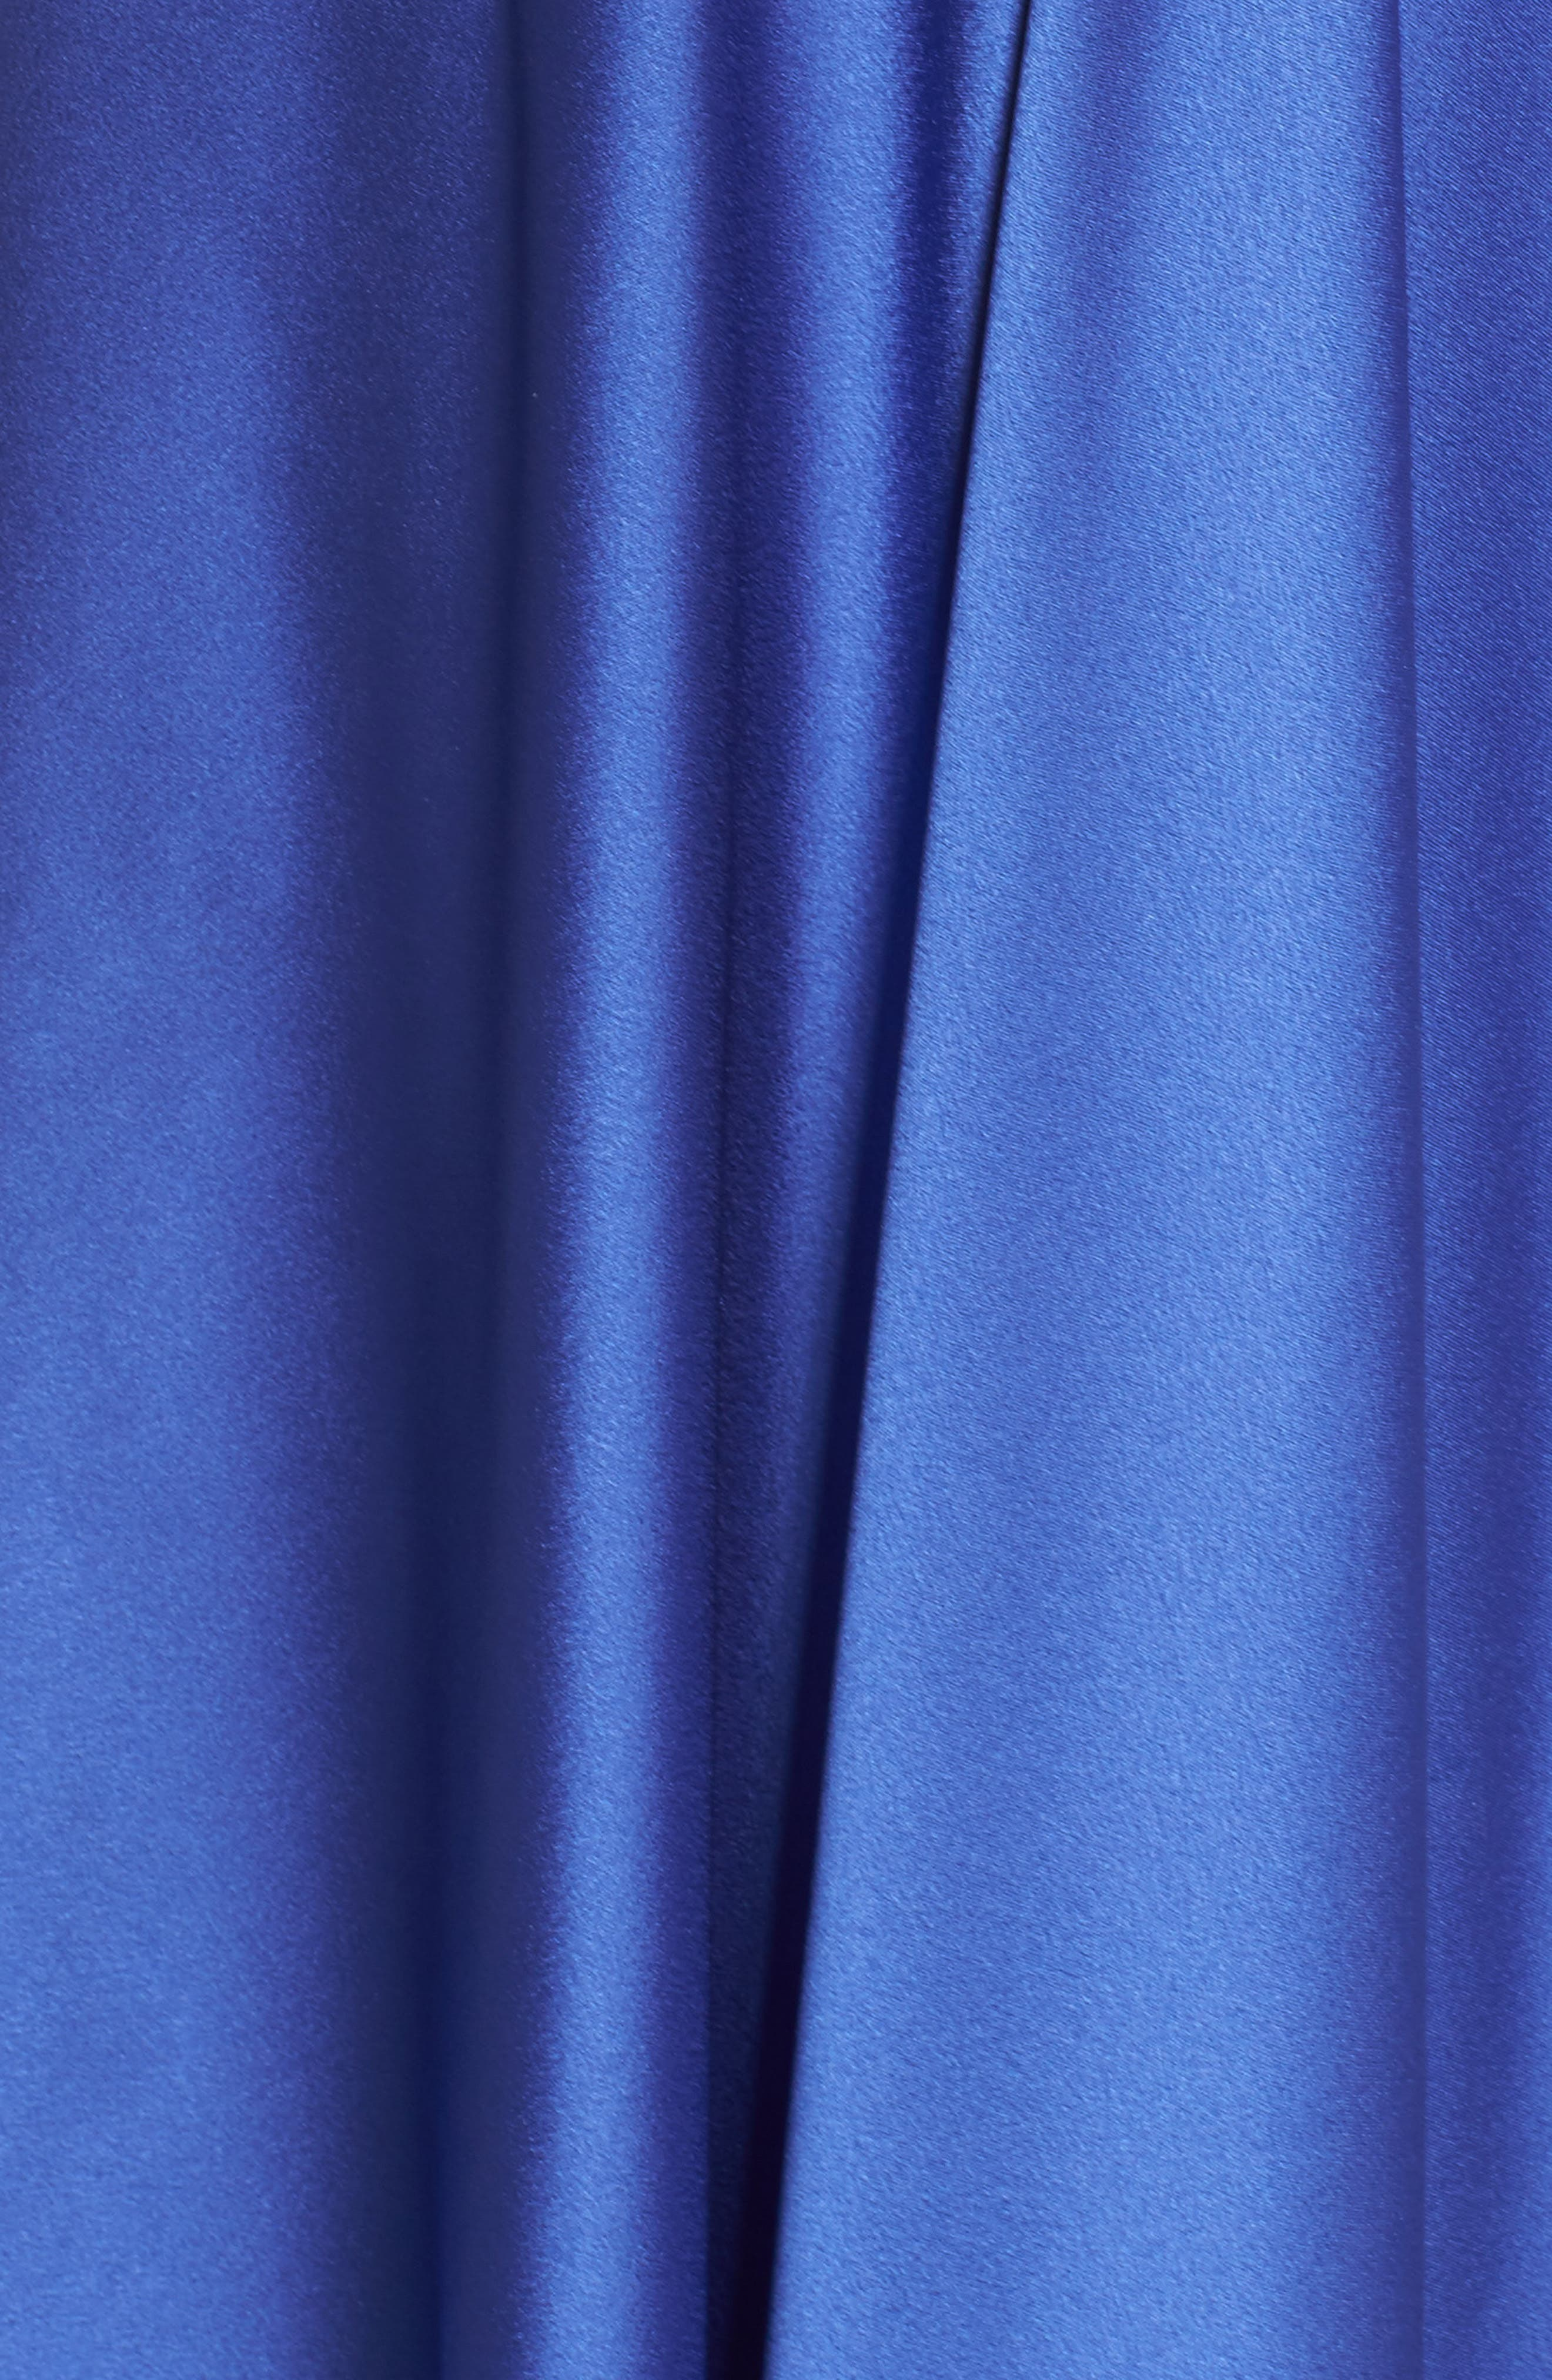 Embroidered Off the Shoulder Satin A-Line Gown,                             Alternate thumbnail 5, color,                             Dark Periwinkle